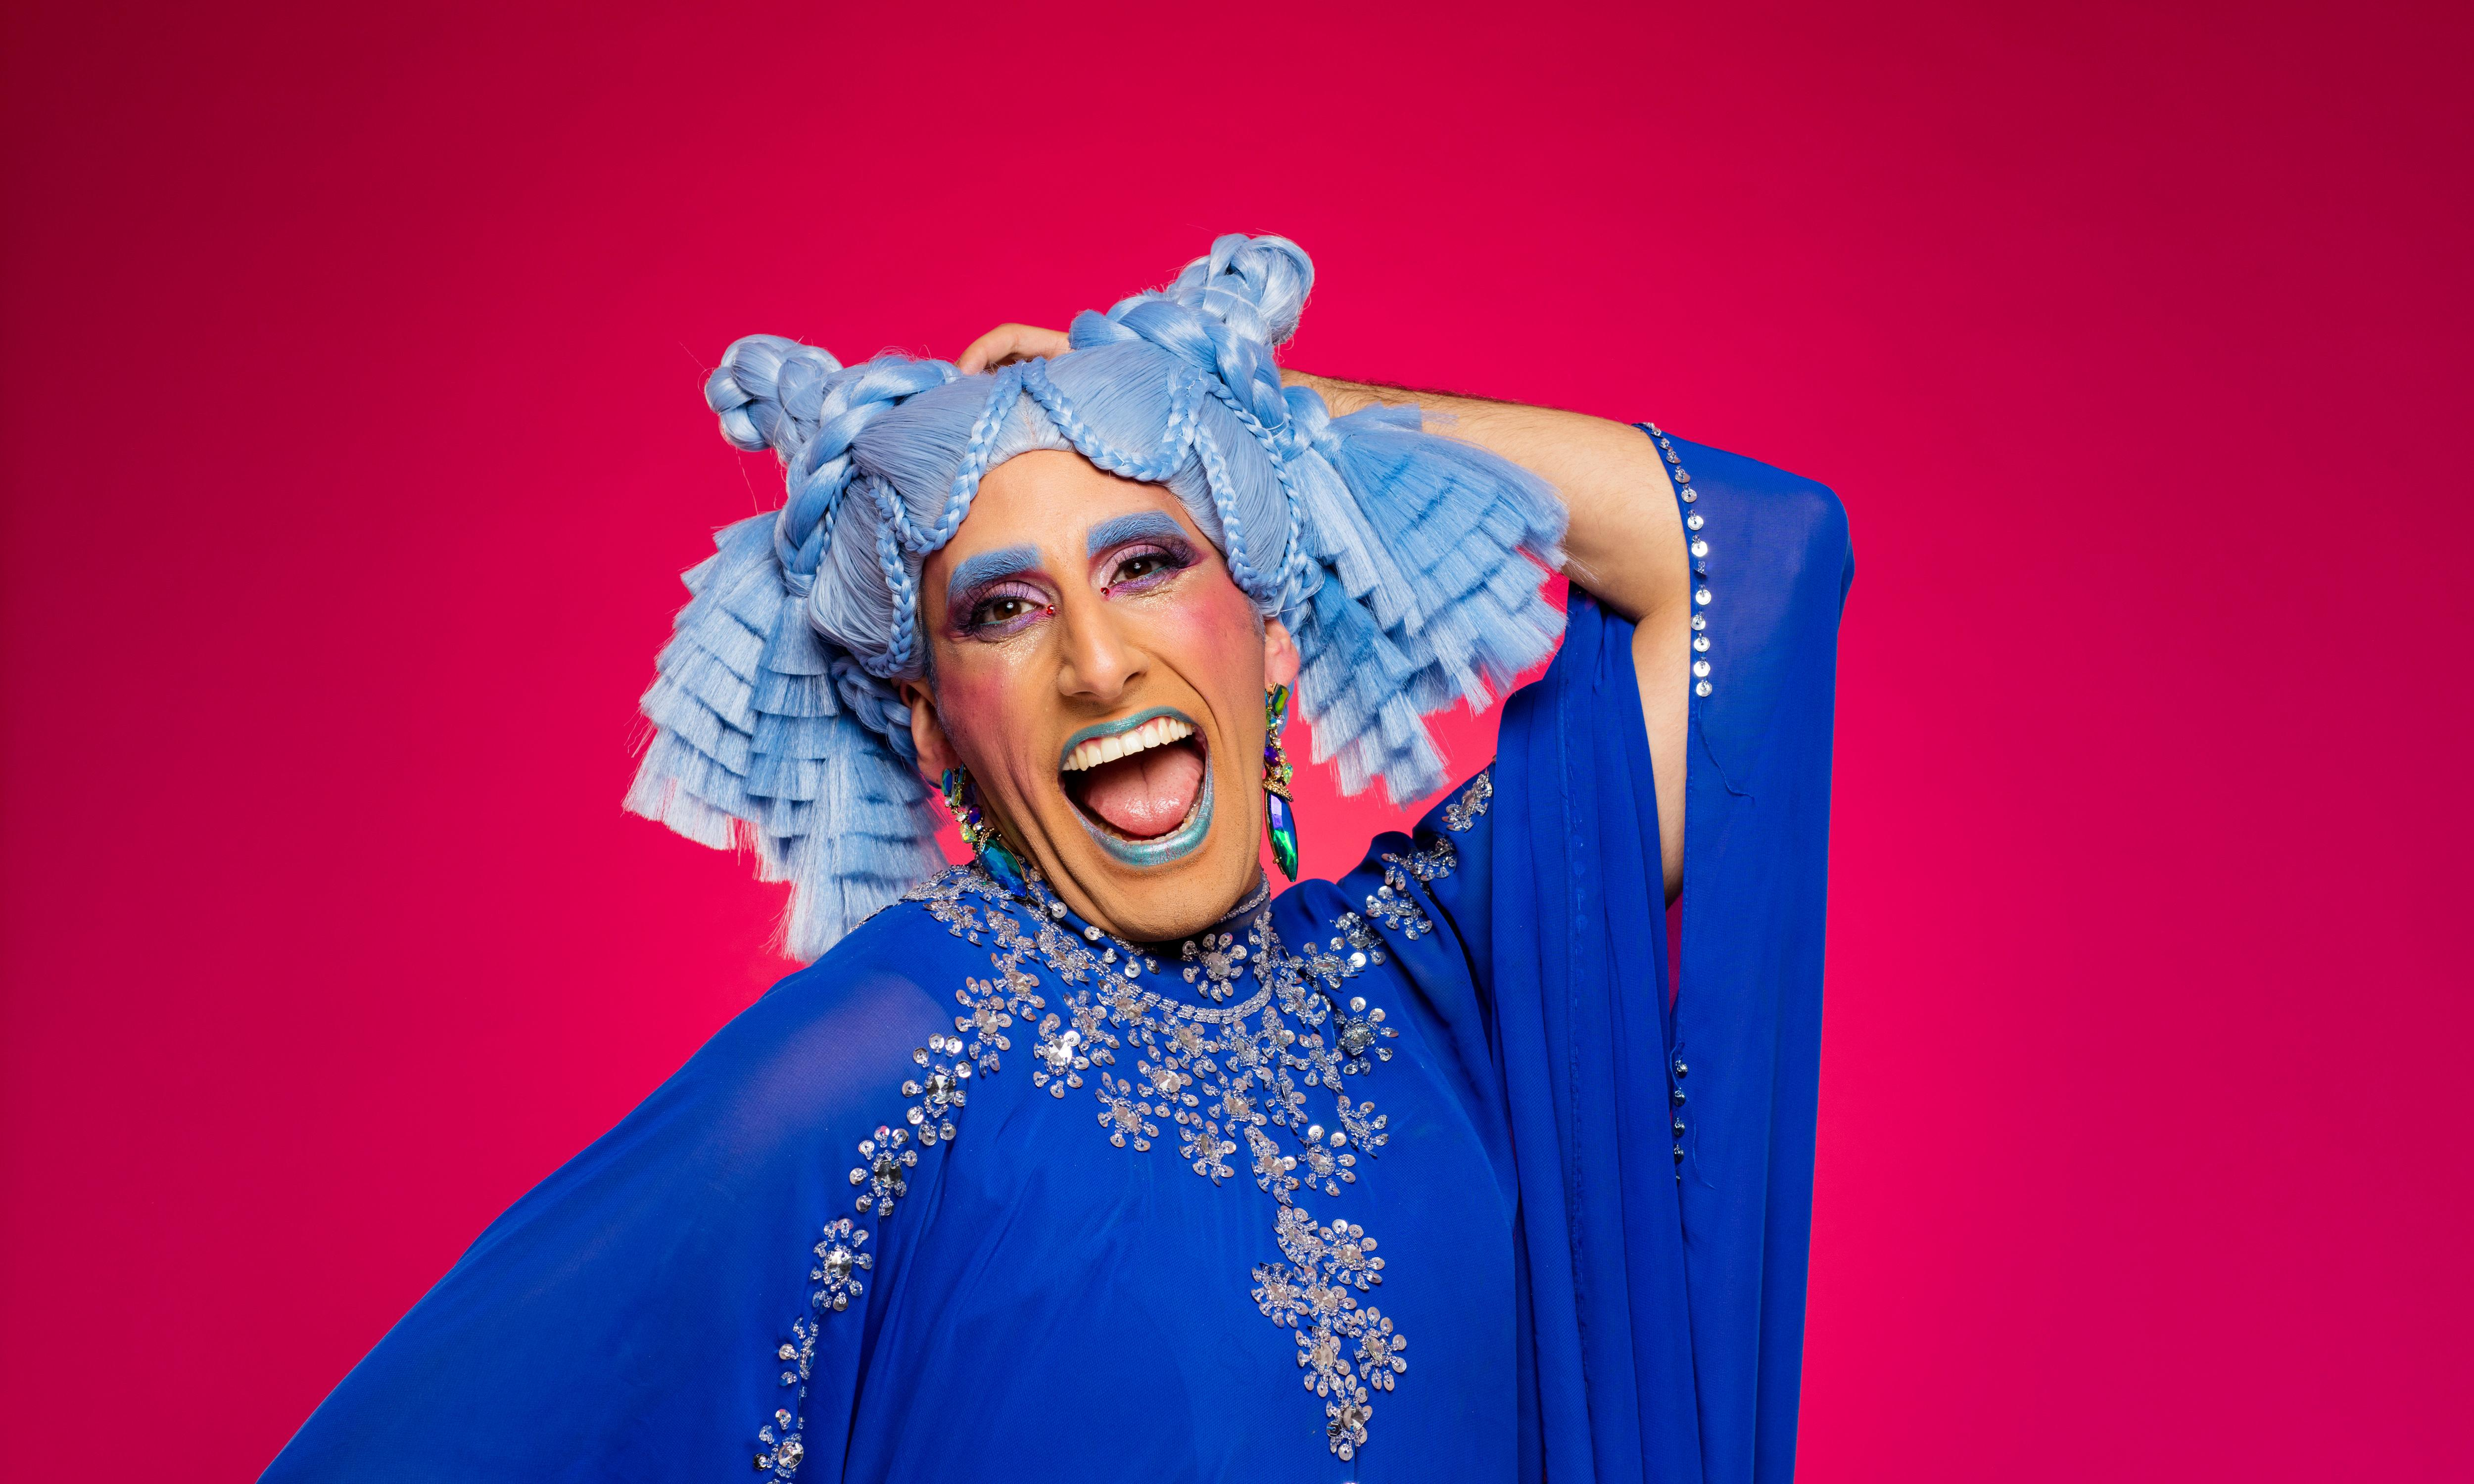 Muslim drag queen Amrou Al-Kadhi: 'Whenever the drag came off, I'd have a nervous breakdown'